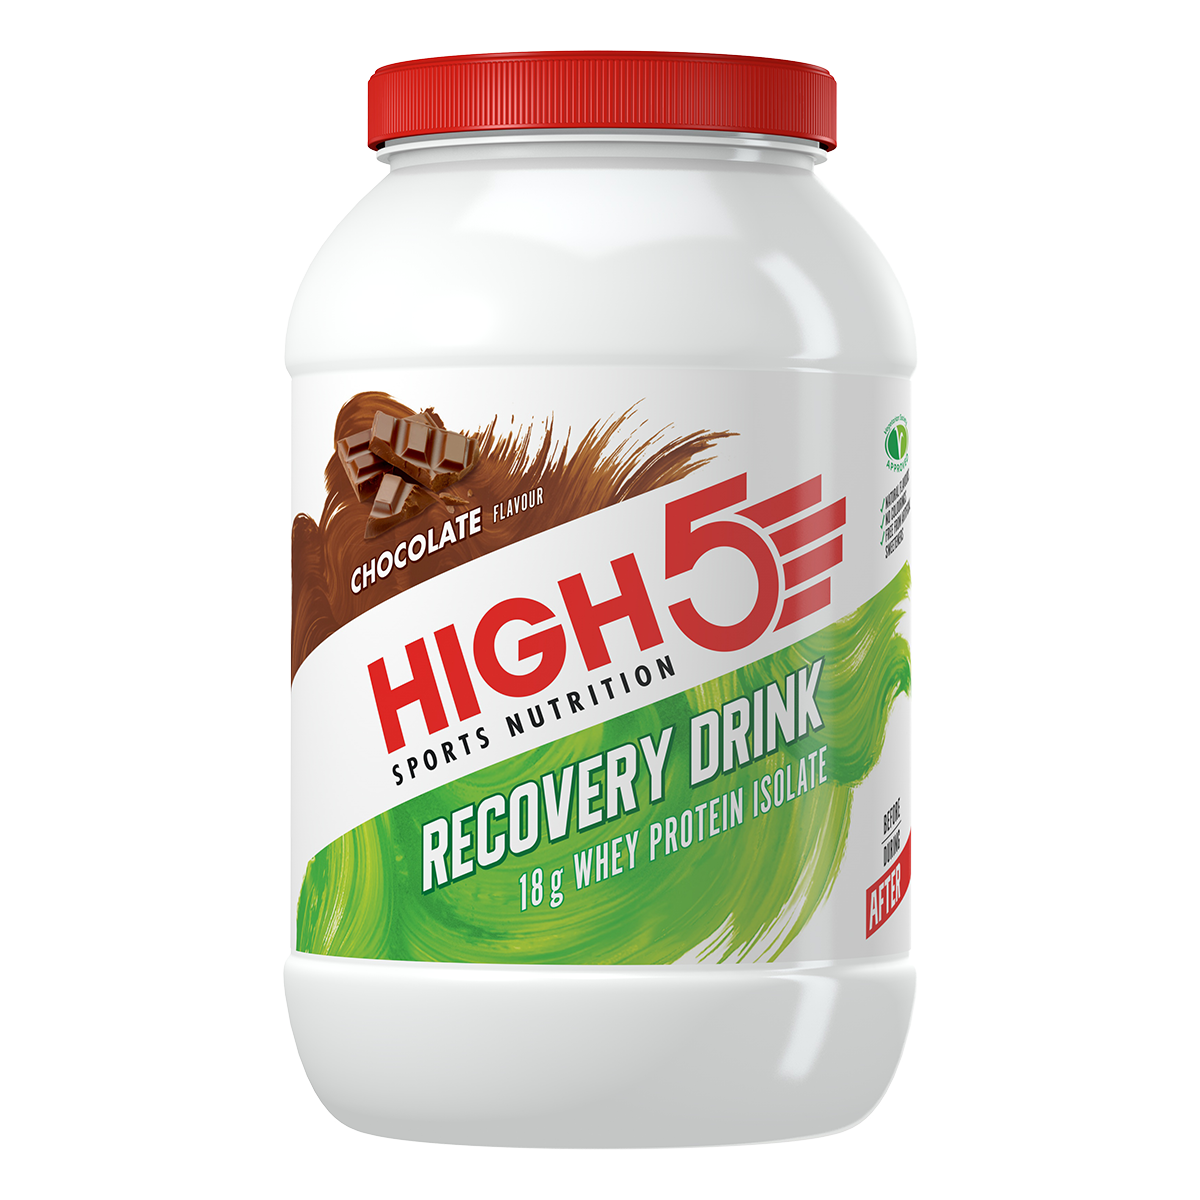 Recovery-Drink_Chocolate_1600g_Front_RGB_1200x1200.png